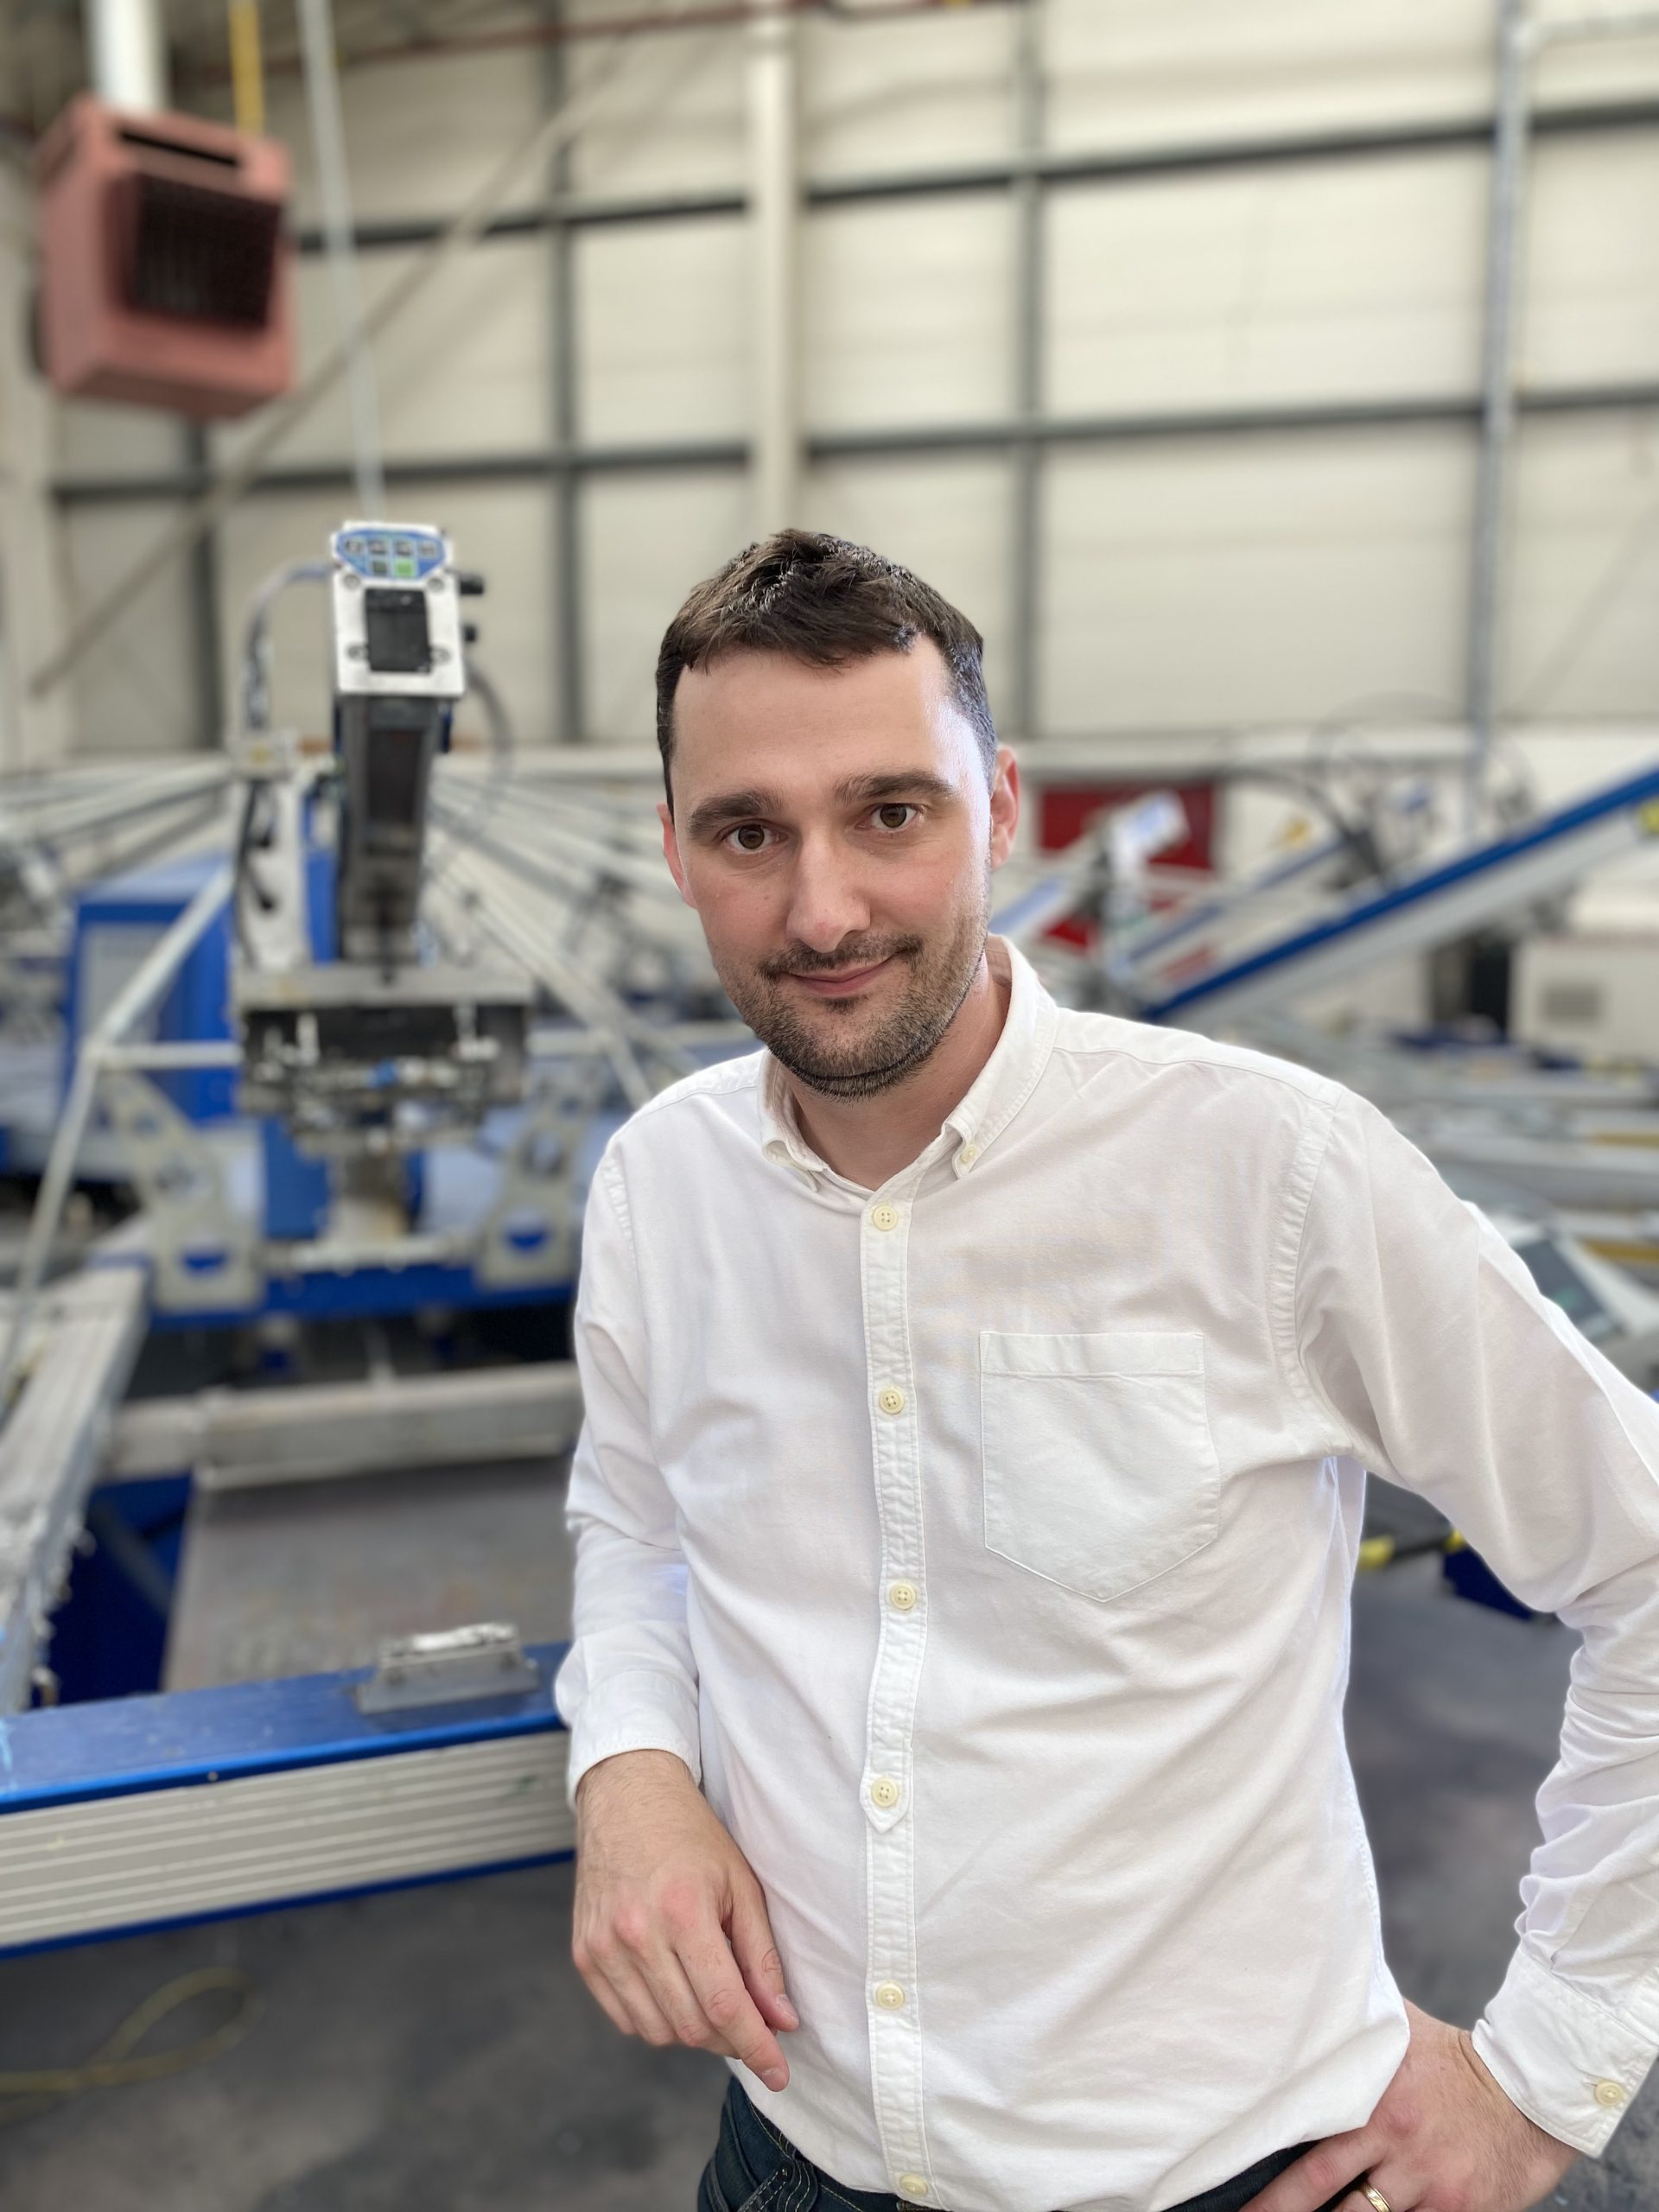 Seb Bristow director at paul bristow manufactures of printed textile products in the UK